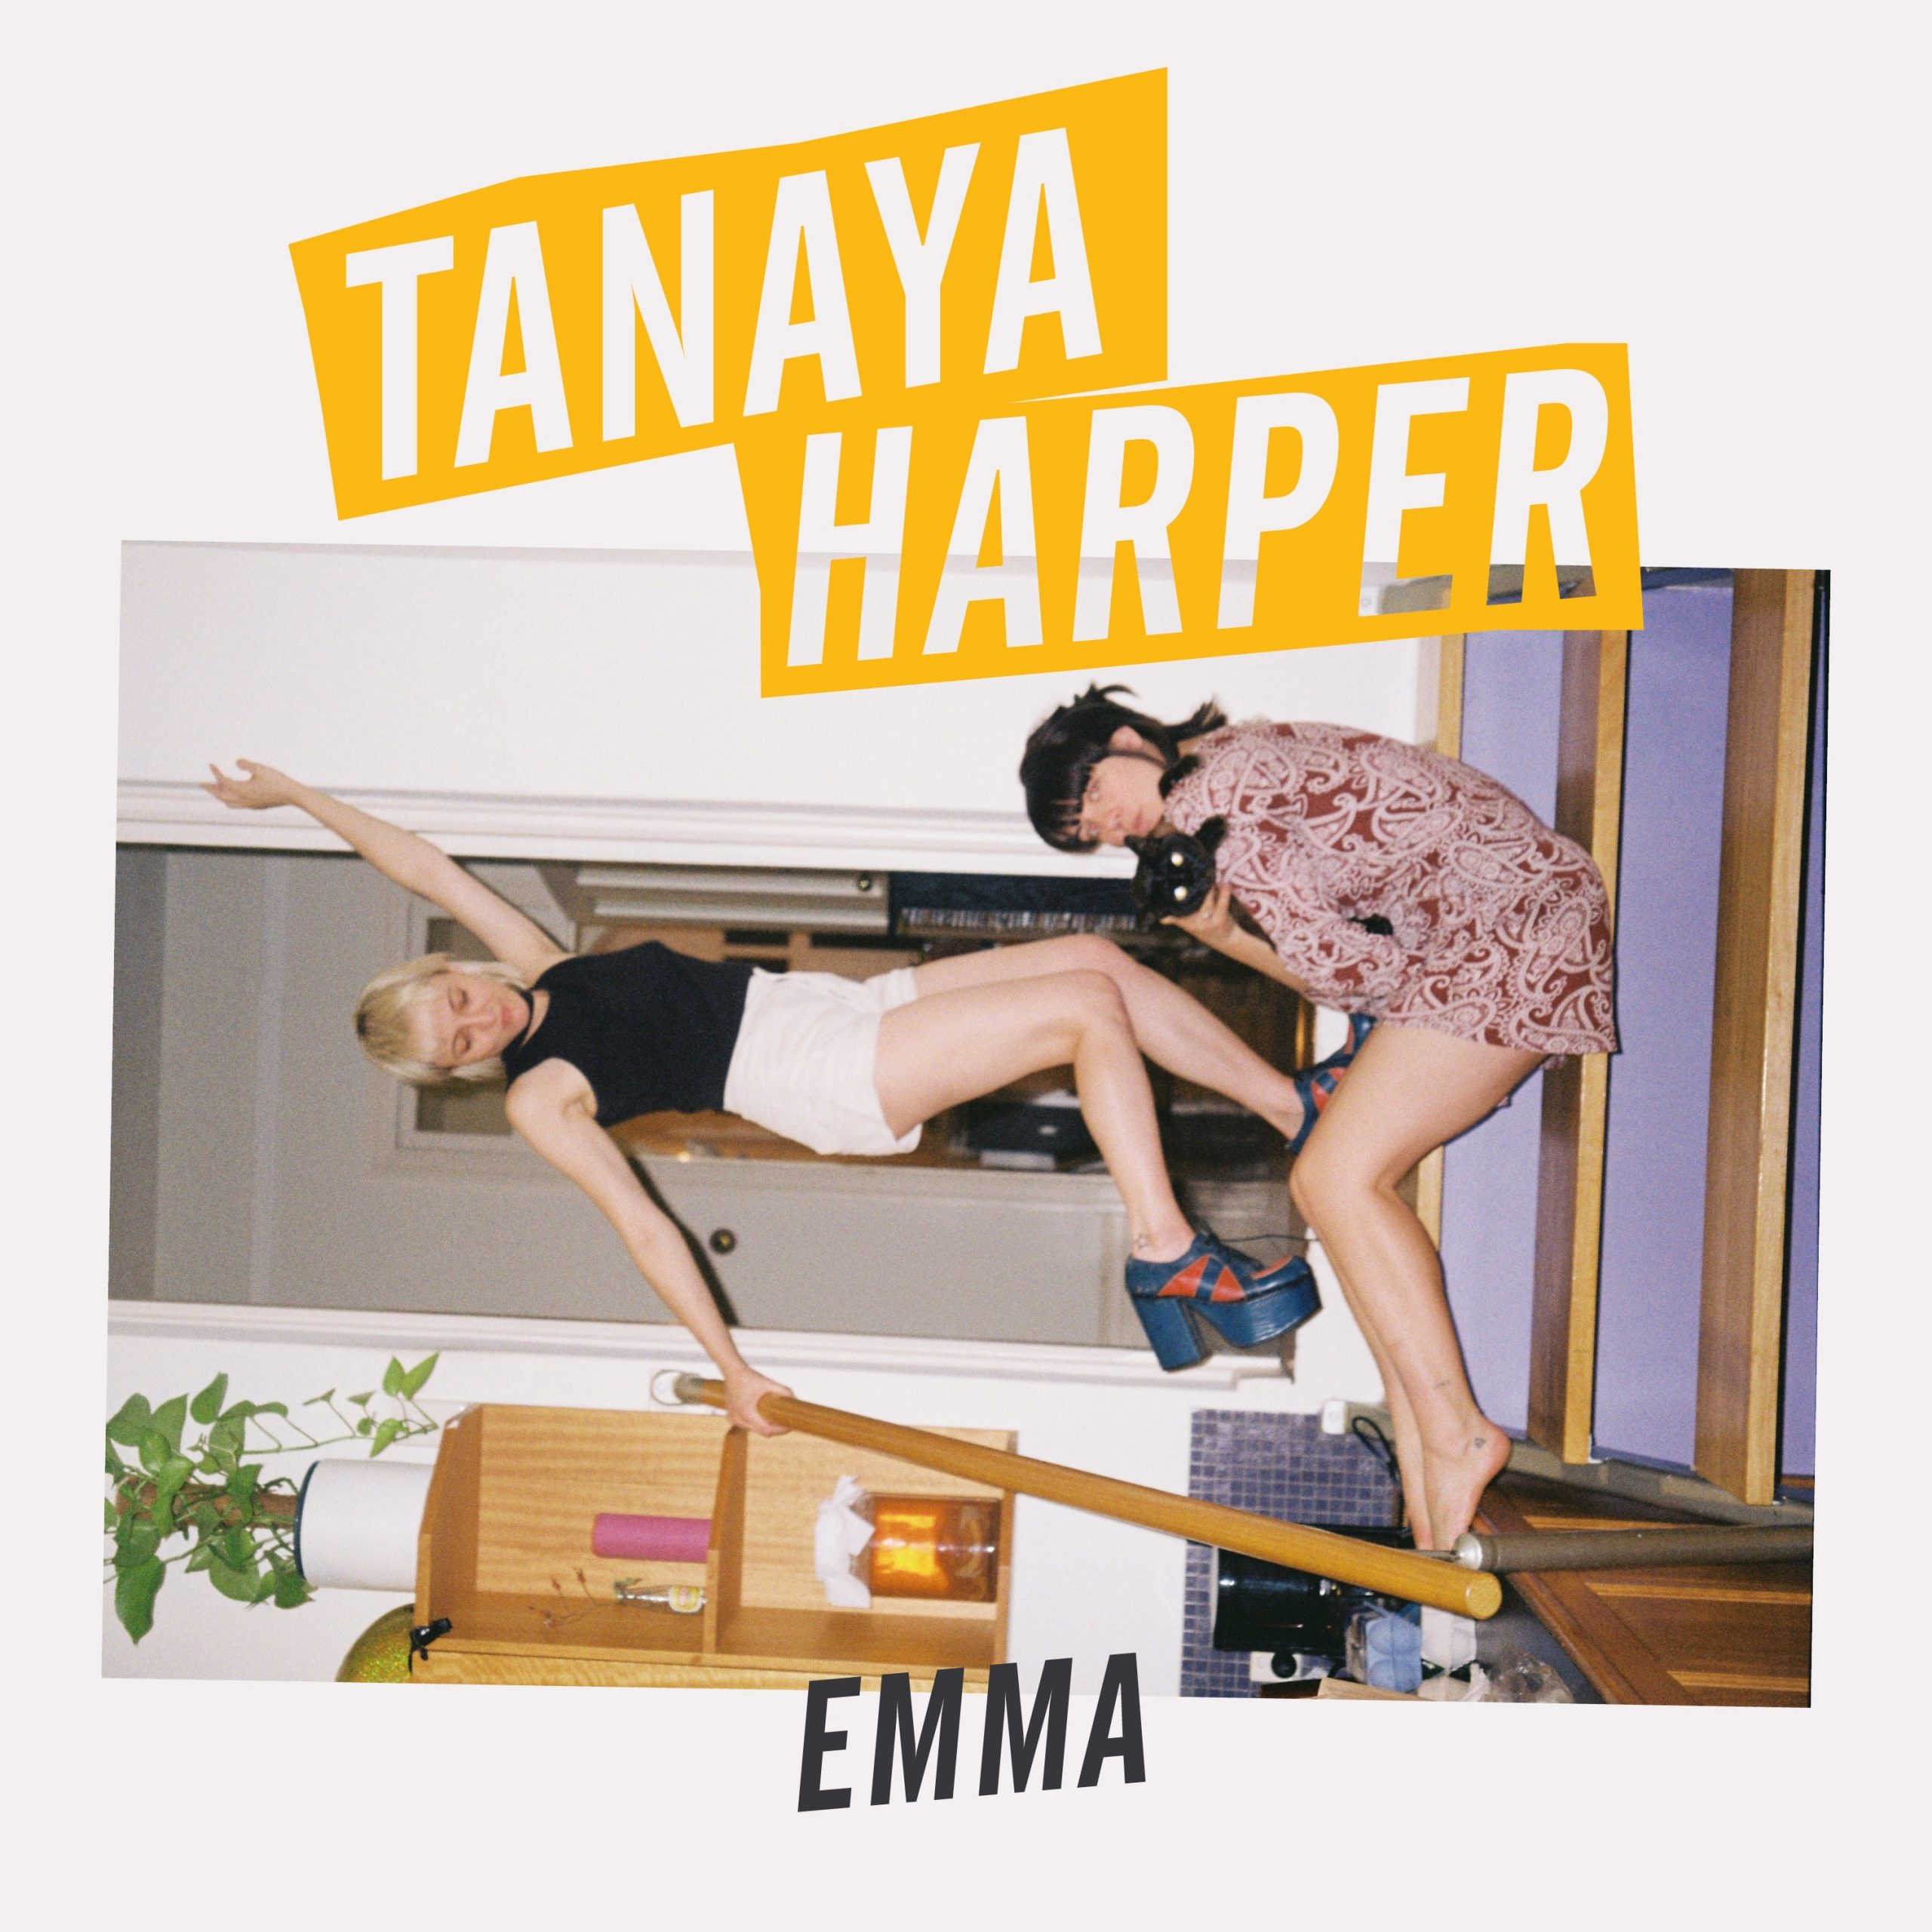 tanaya harper reveals punchy new track 'emma' and announces irl wa single launch shows